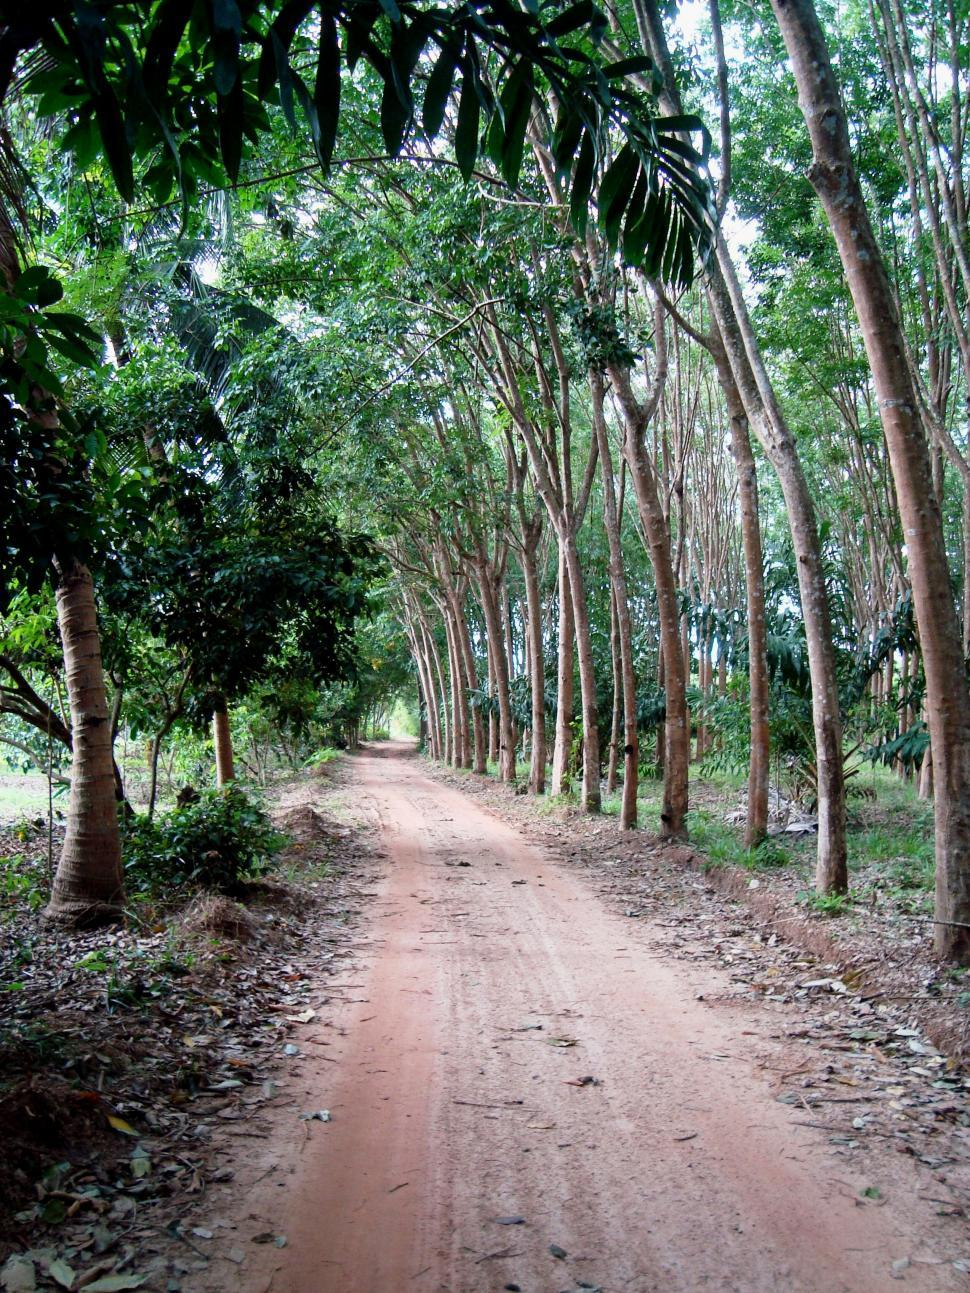 Download Free Stock HD Photo of Forest Dirt Road Online